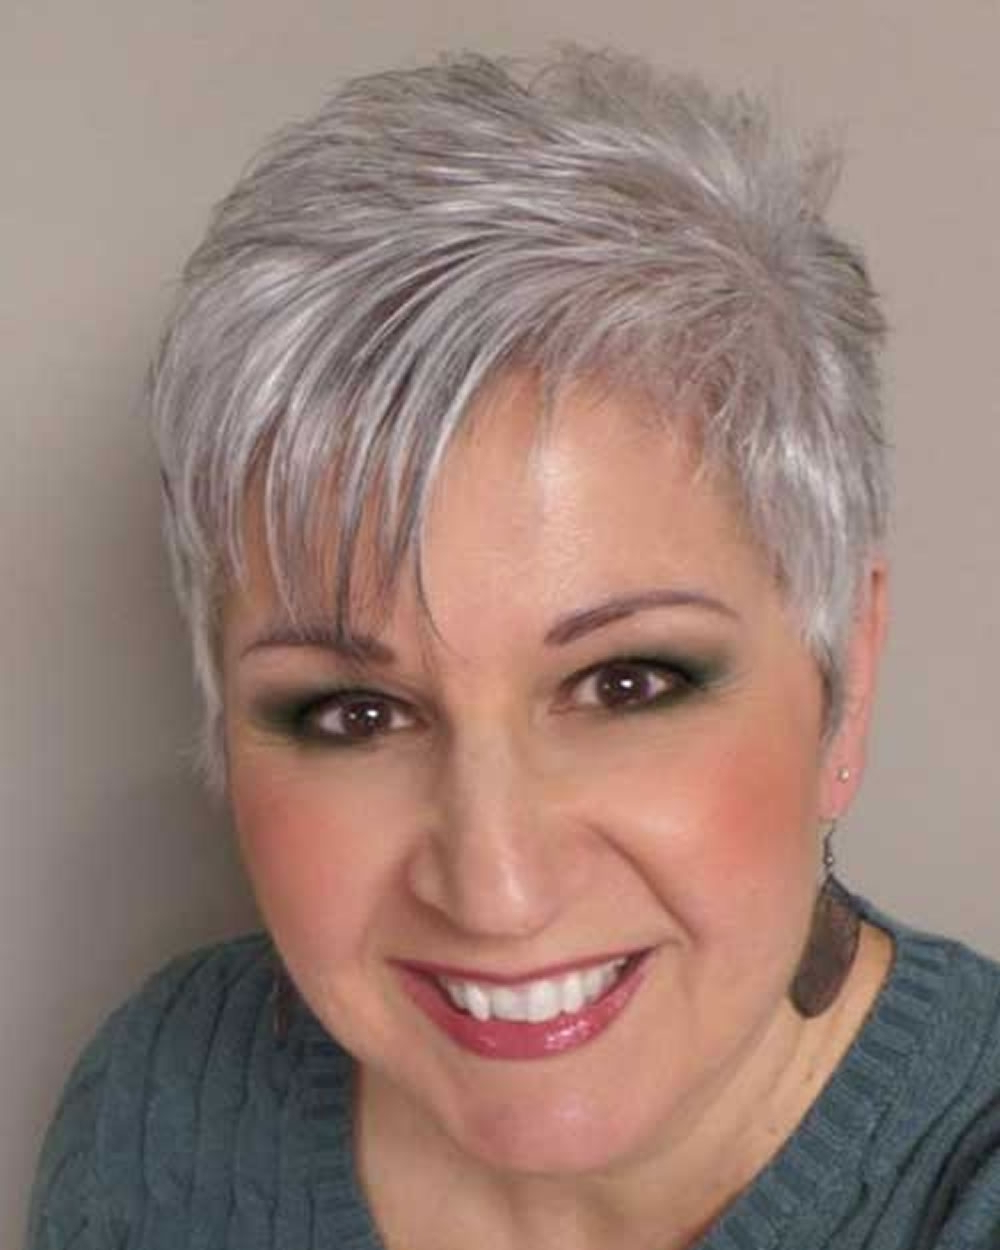 50S Hairstyles For Short Hair   All Hairstyles Intended For Short Hairstyles For The Over 50S (View 19 of 25)